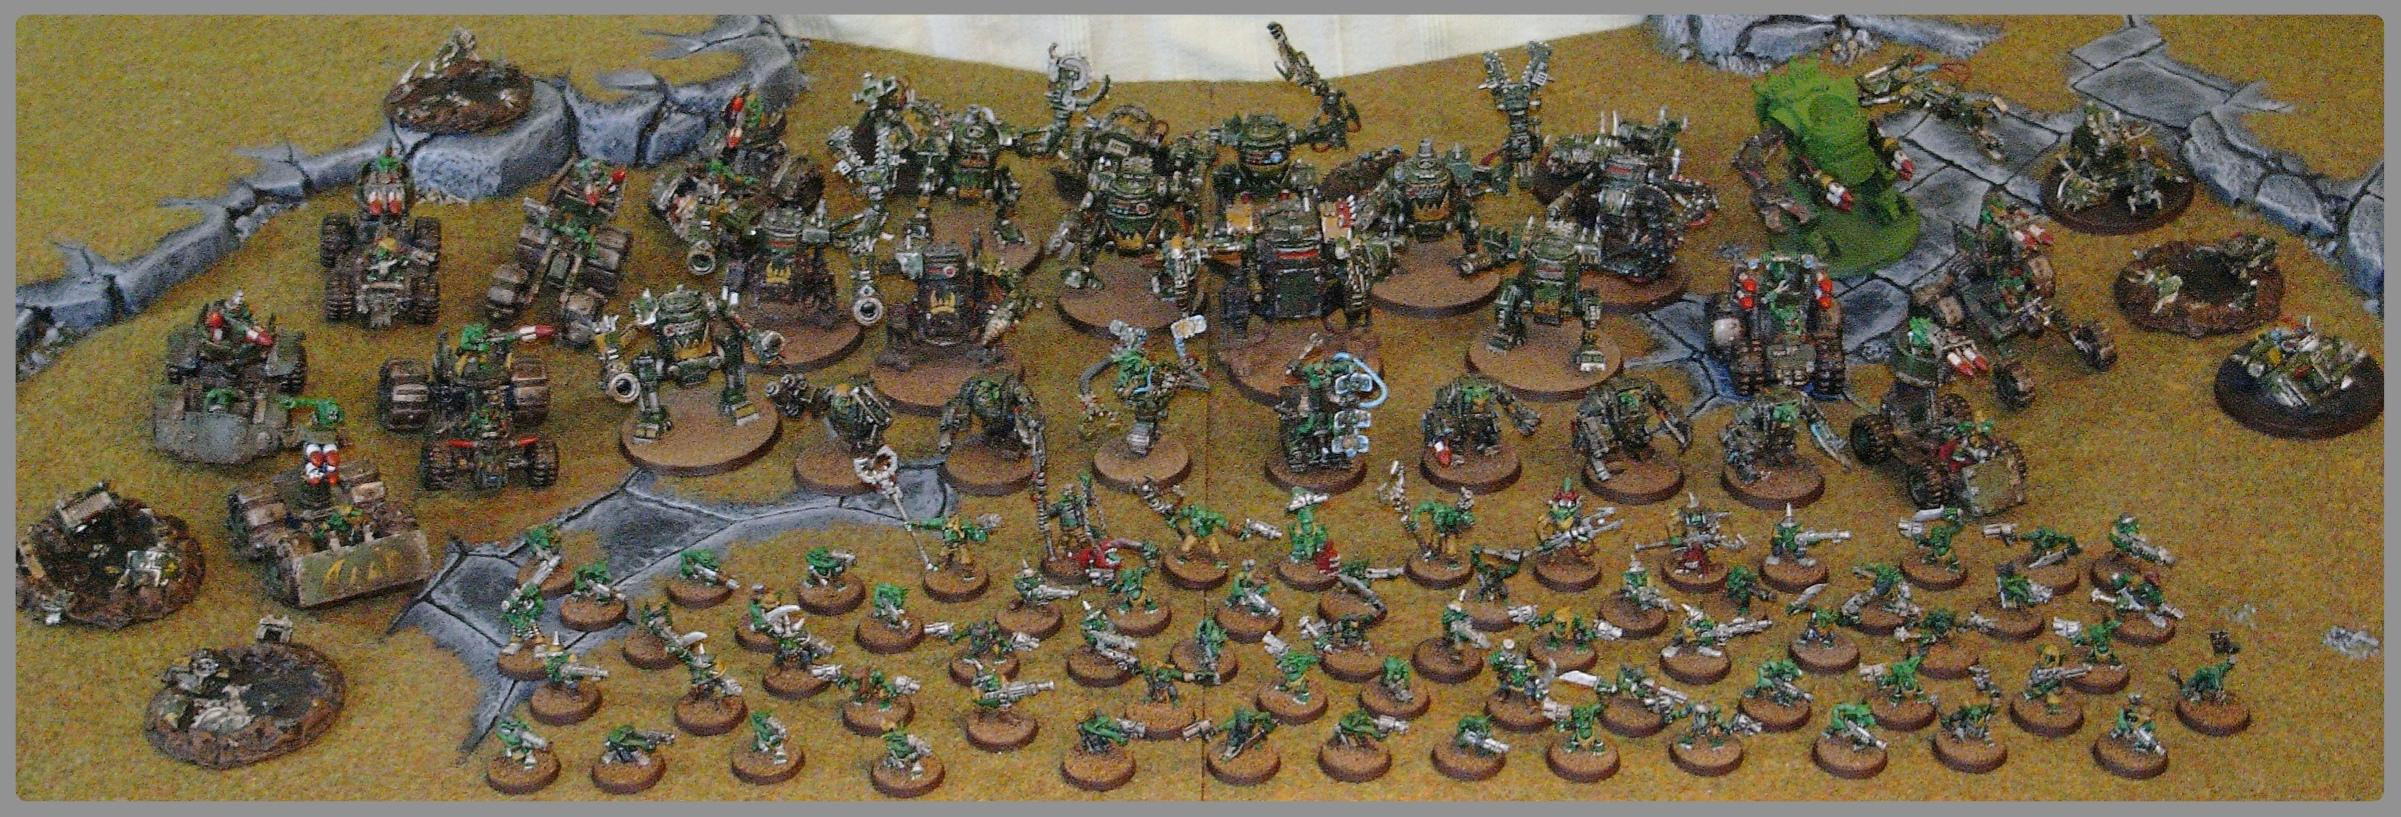 Battle Foam, Battlefoam, Dark Eldar, Foam, Grots, Hellions, Review, Warhammer 40,000